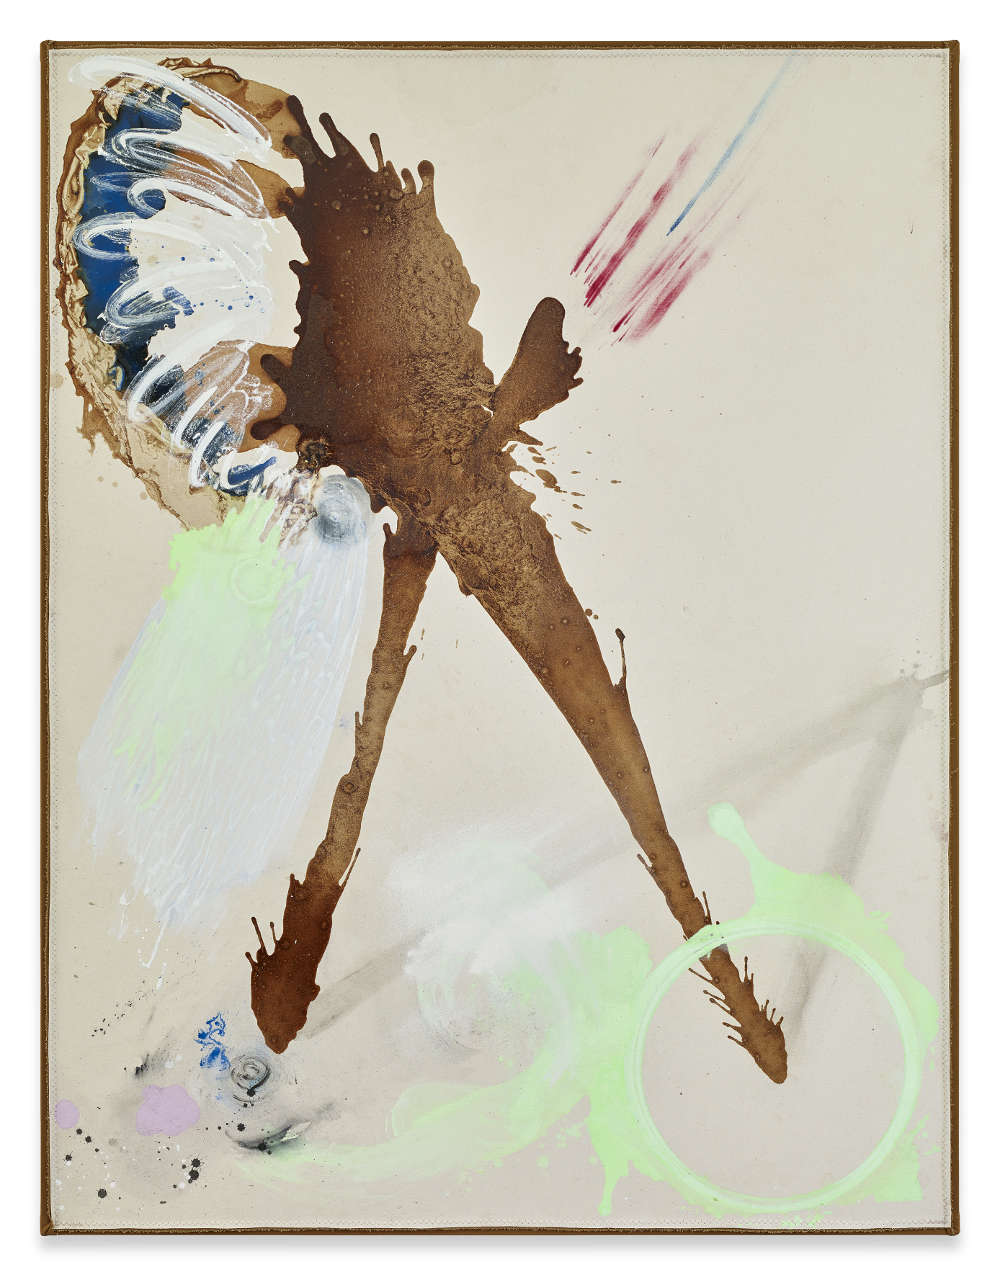 Lucy Dodd, The Blow, 2018. Tobacco, ash, cochineal, azurite, dry pigment, and acrylic paint on canvas 157,5 x 120,7 cm 62 x 47 1/2 inches © Lucy Dodd. Courtesy of Sprüth Magers and David Lewis Gallery, New York. Photography by Stephen White